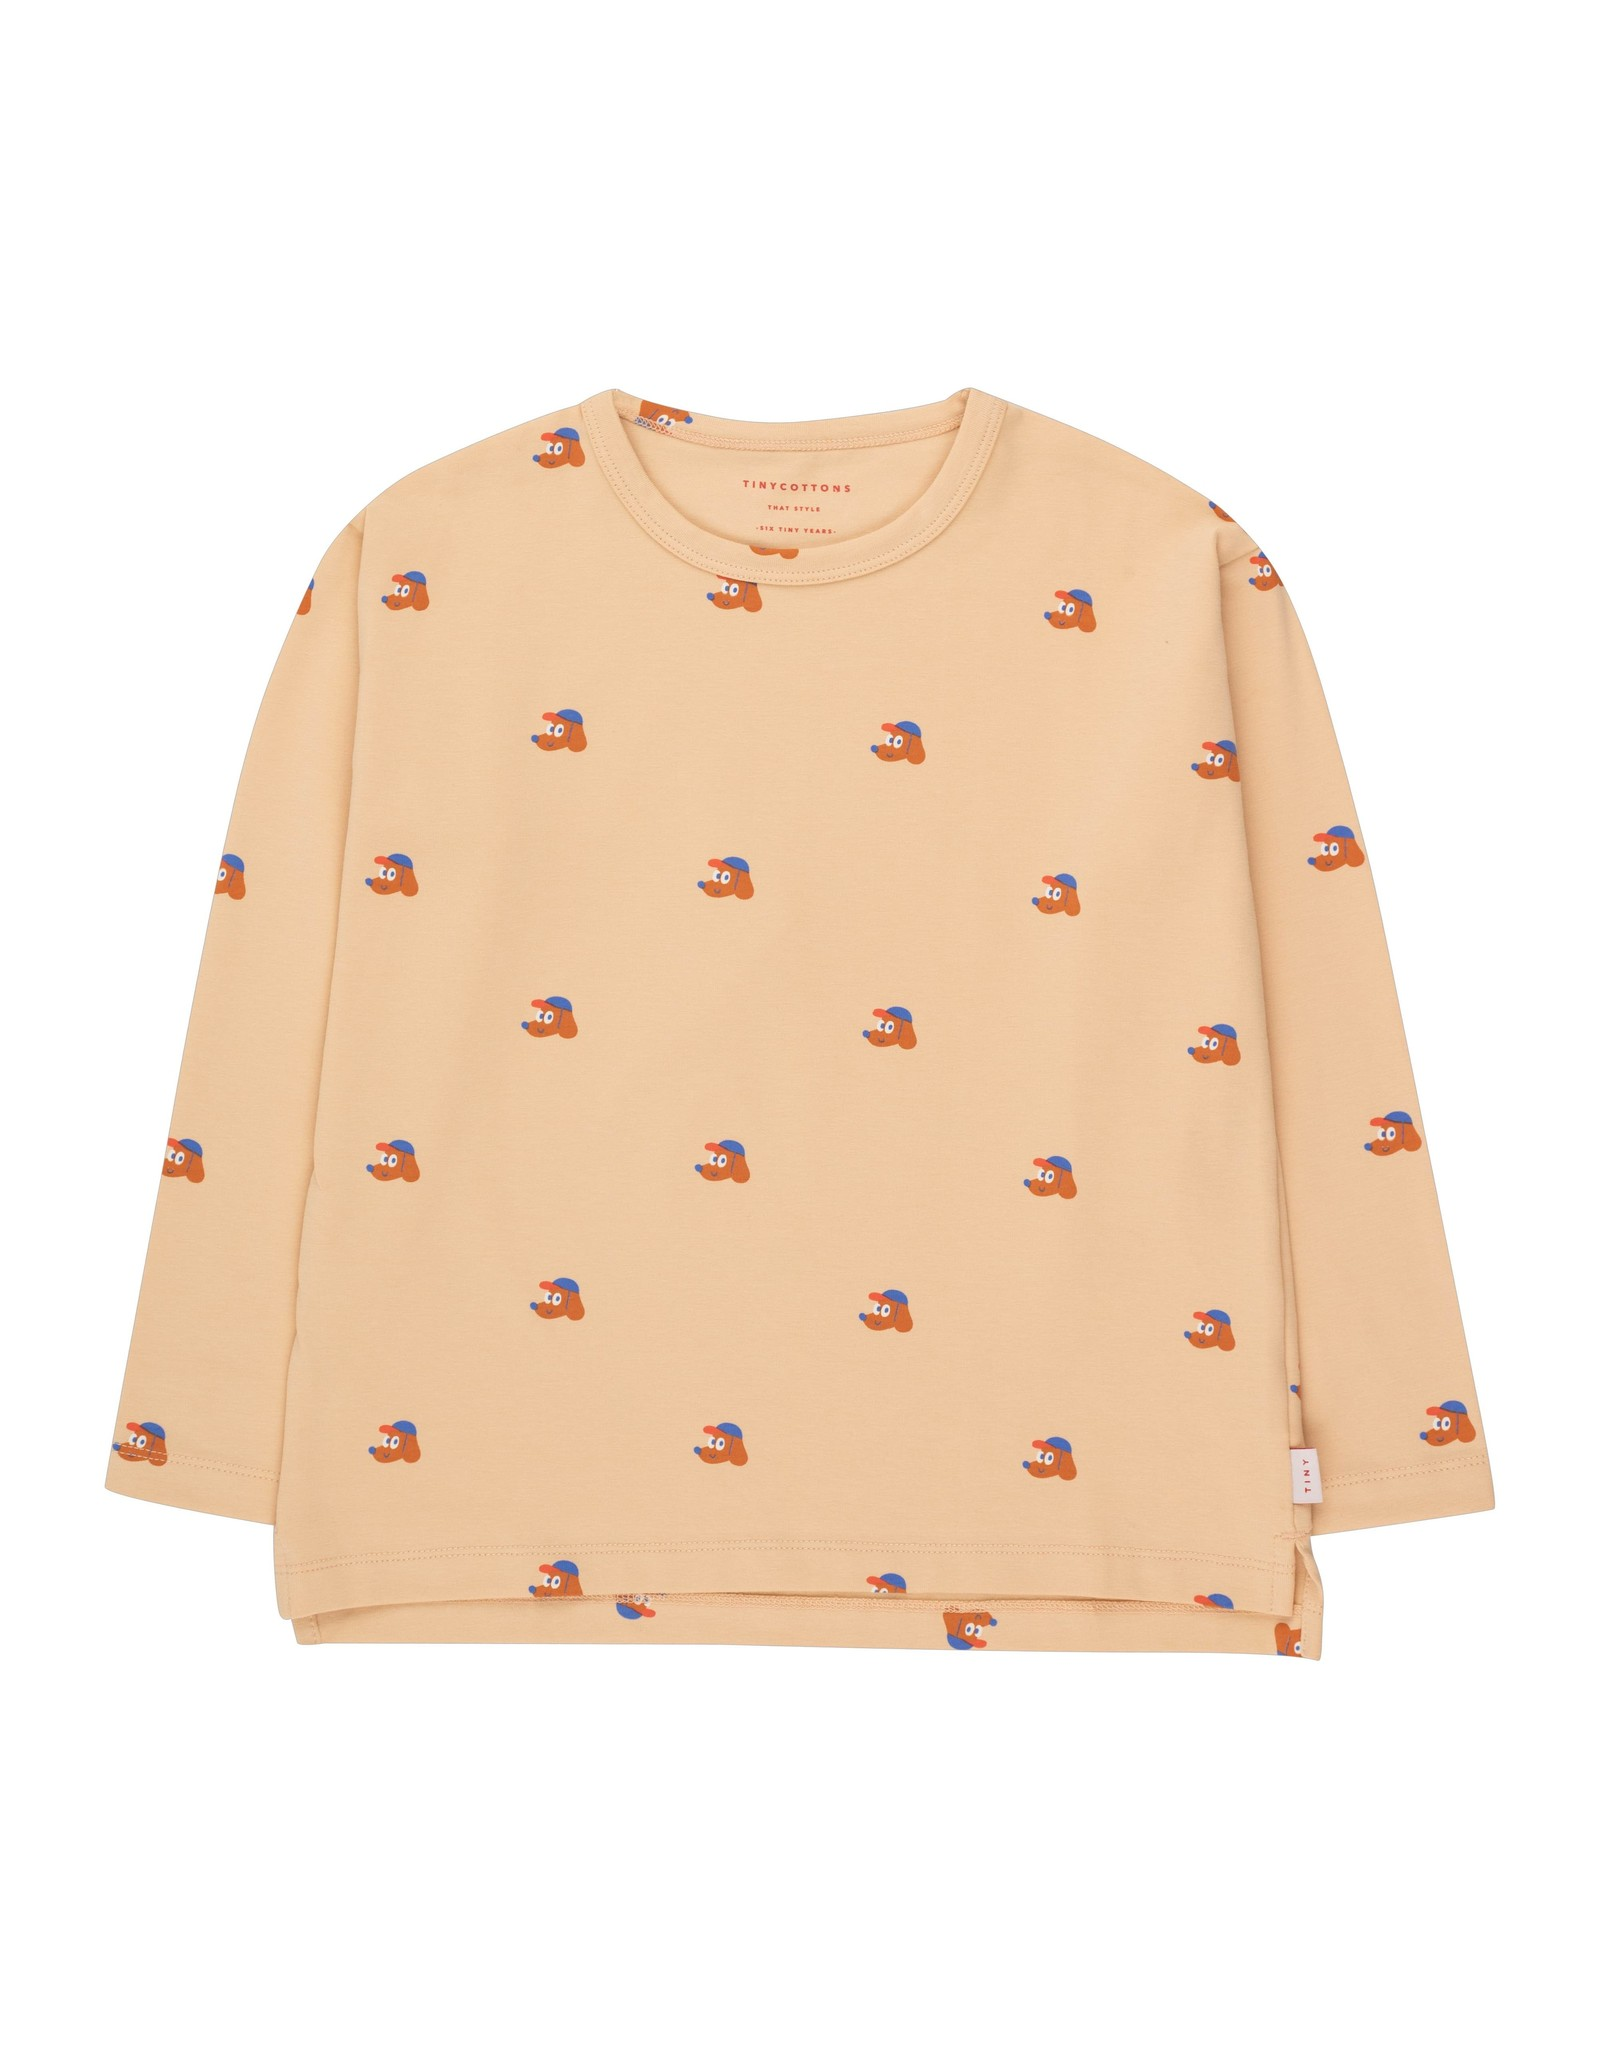 Tinycottons Dogs Tee